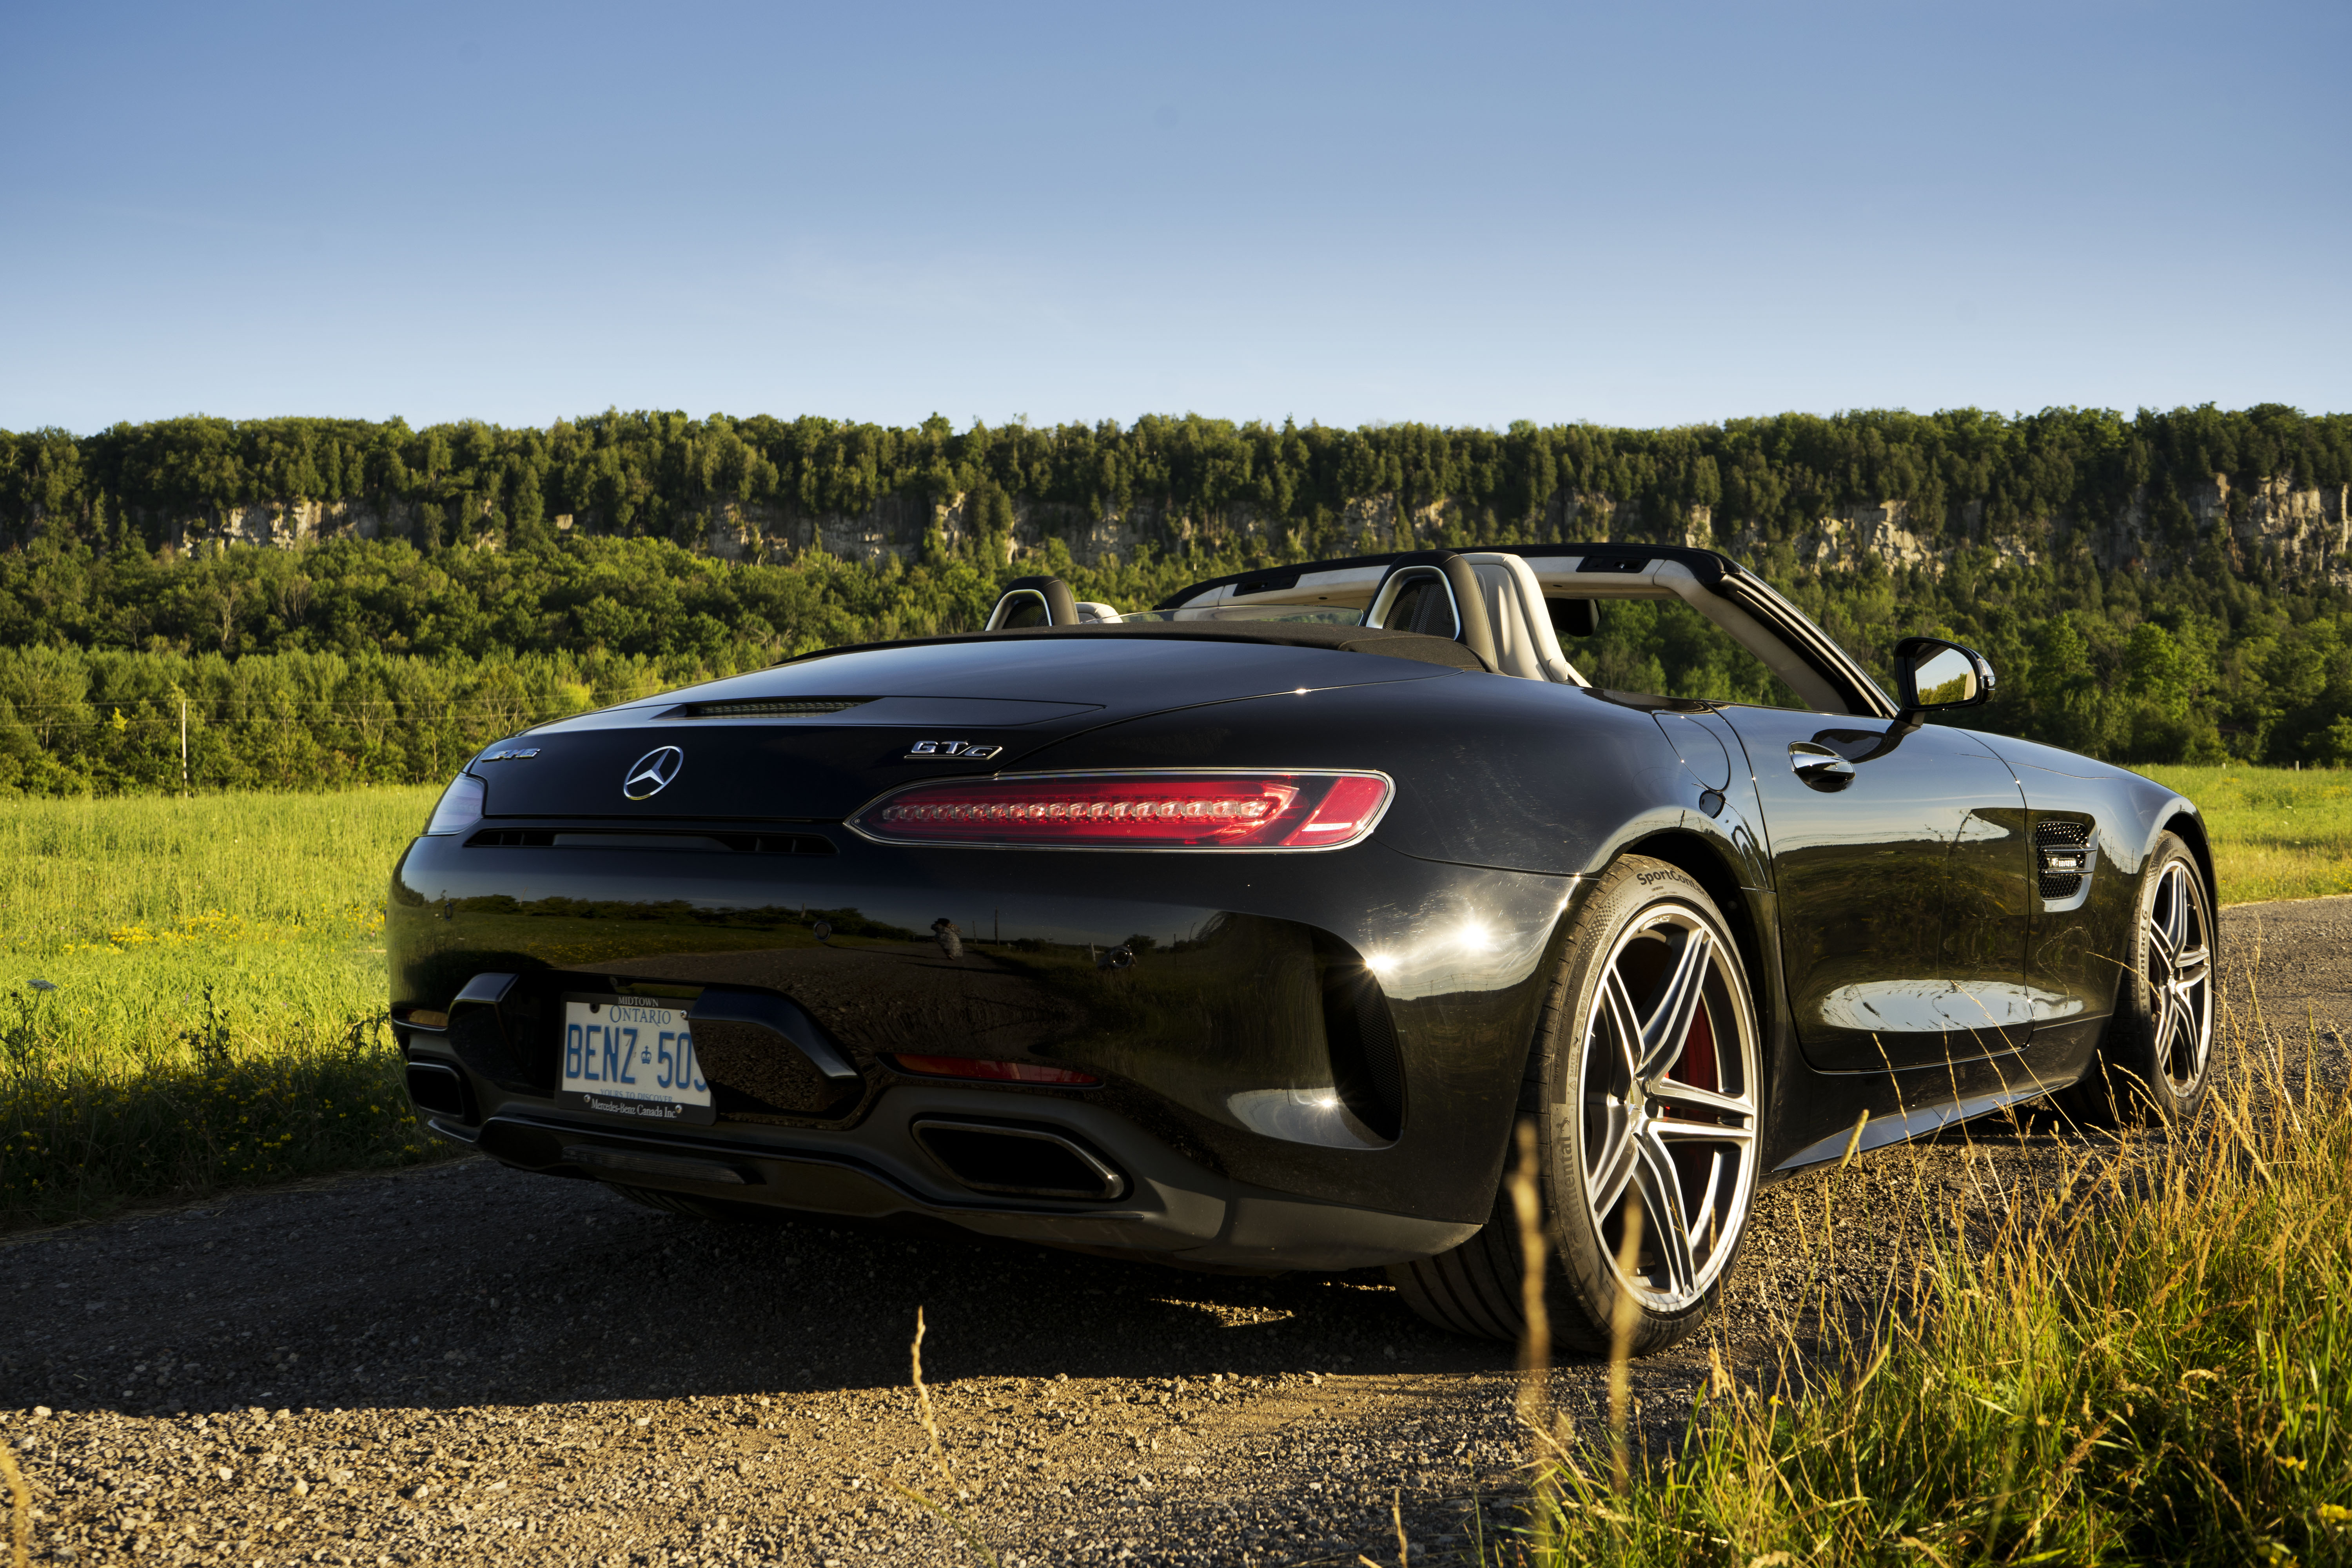 2018 Mercedes-AMG GT C Roadster rear